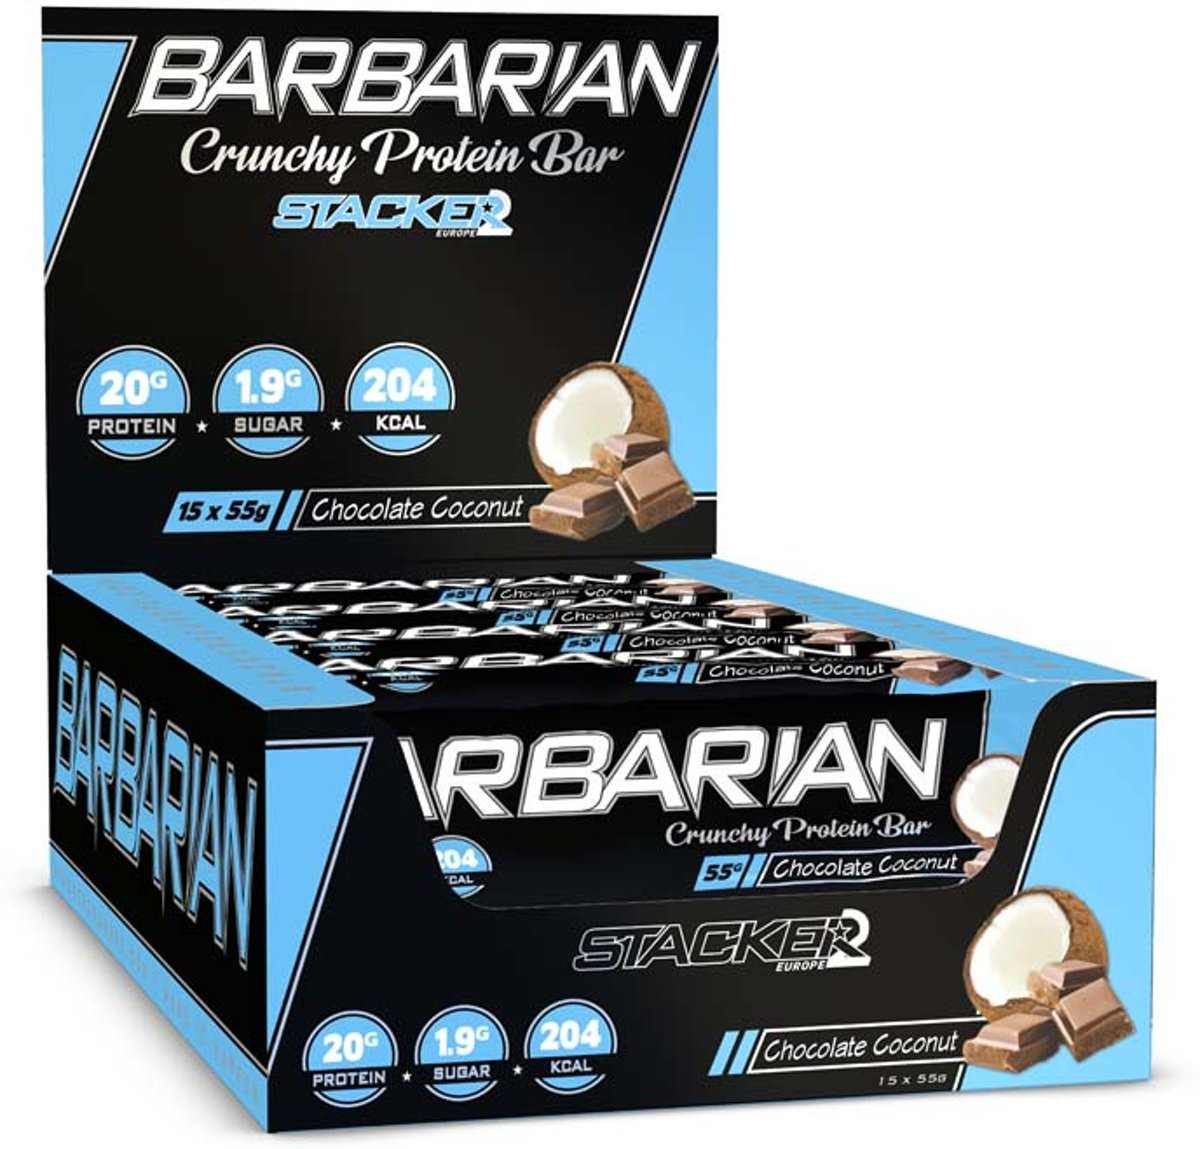 Barbarian - Chocolate Coconut [15 Crunchy Protein Bars] | Stacker2 Europe kopen